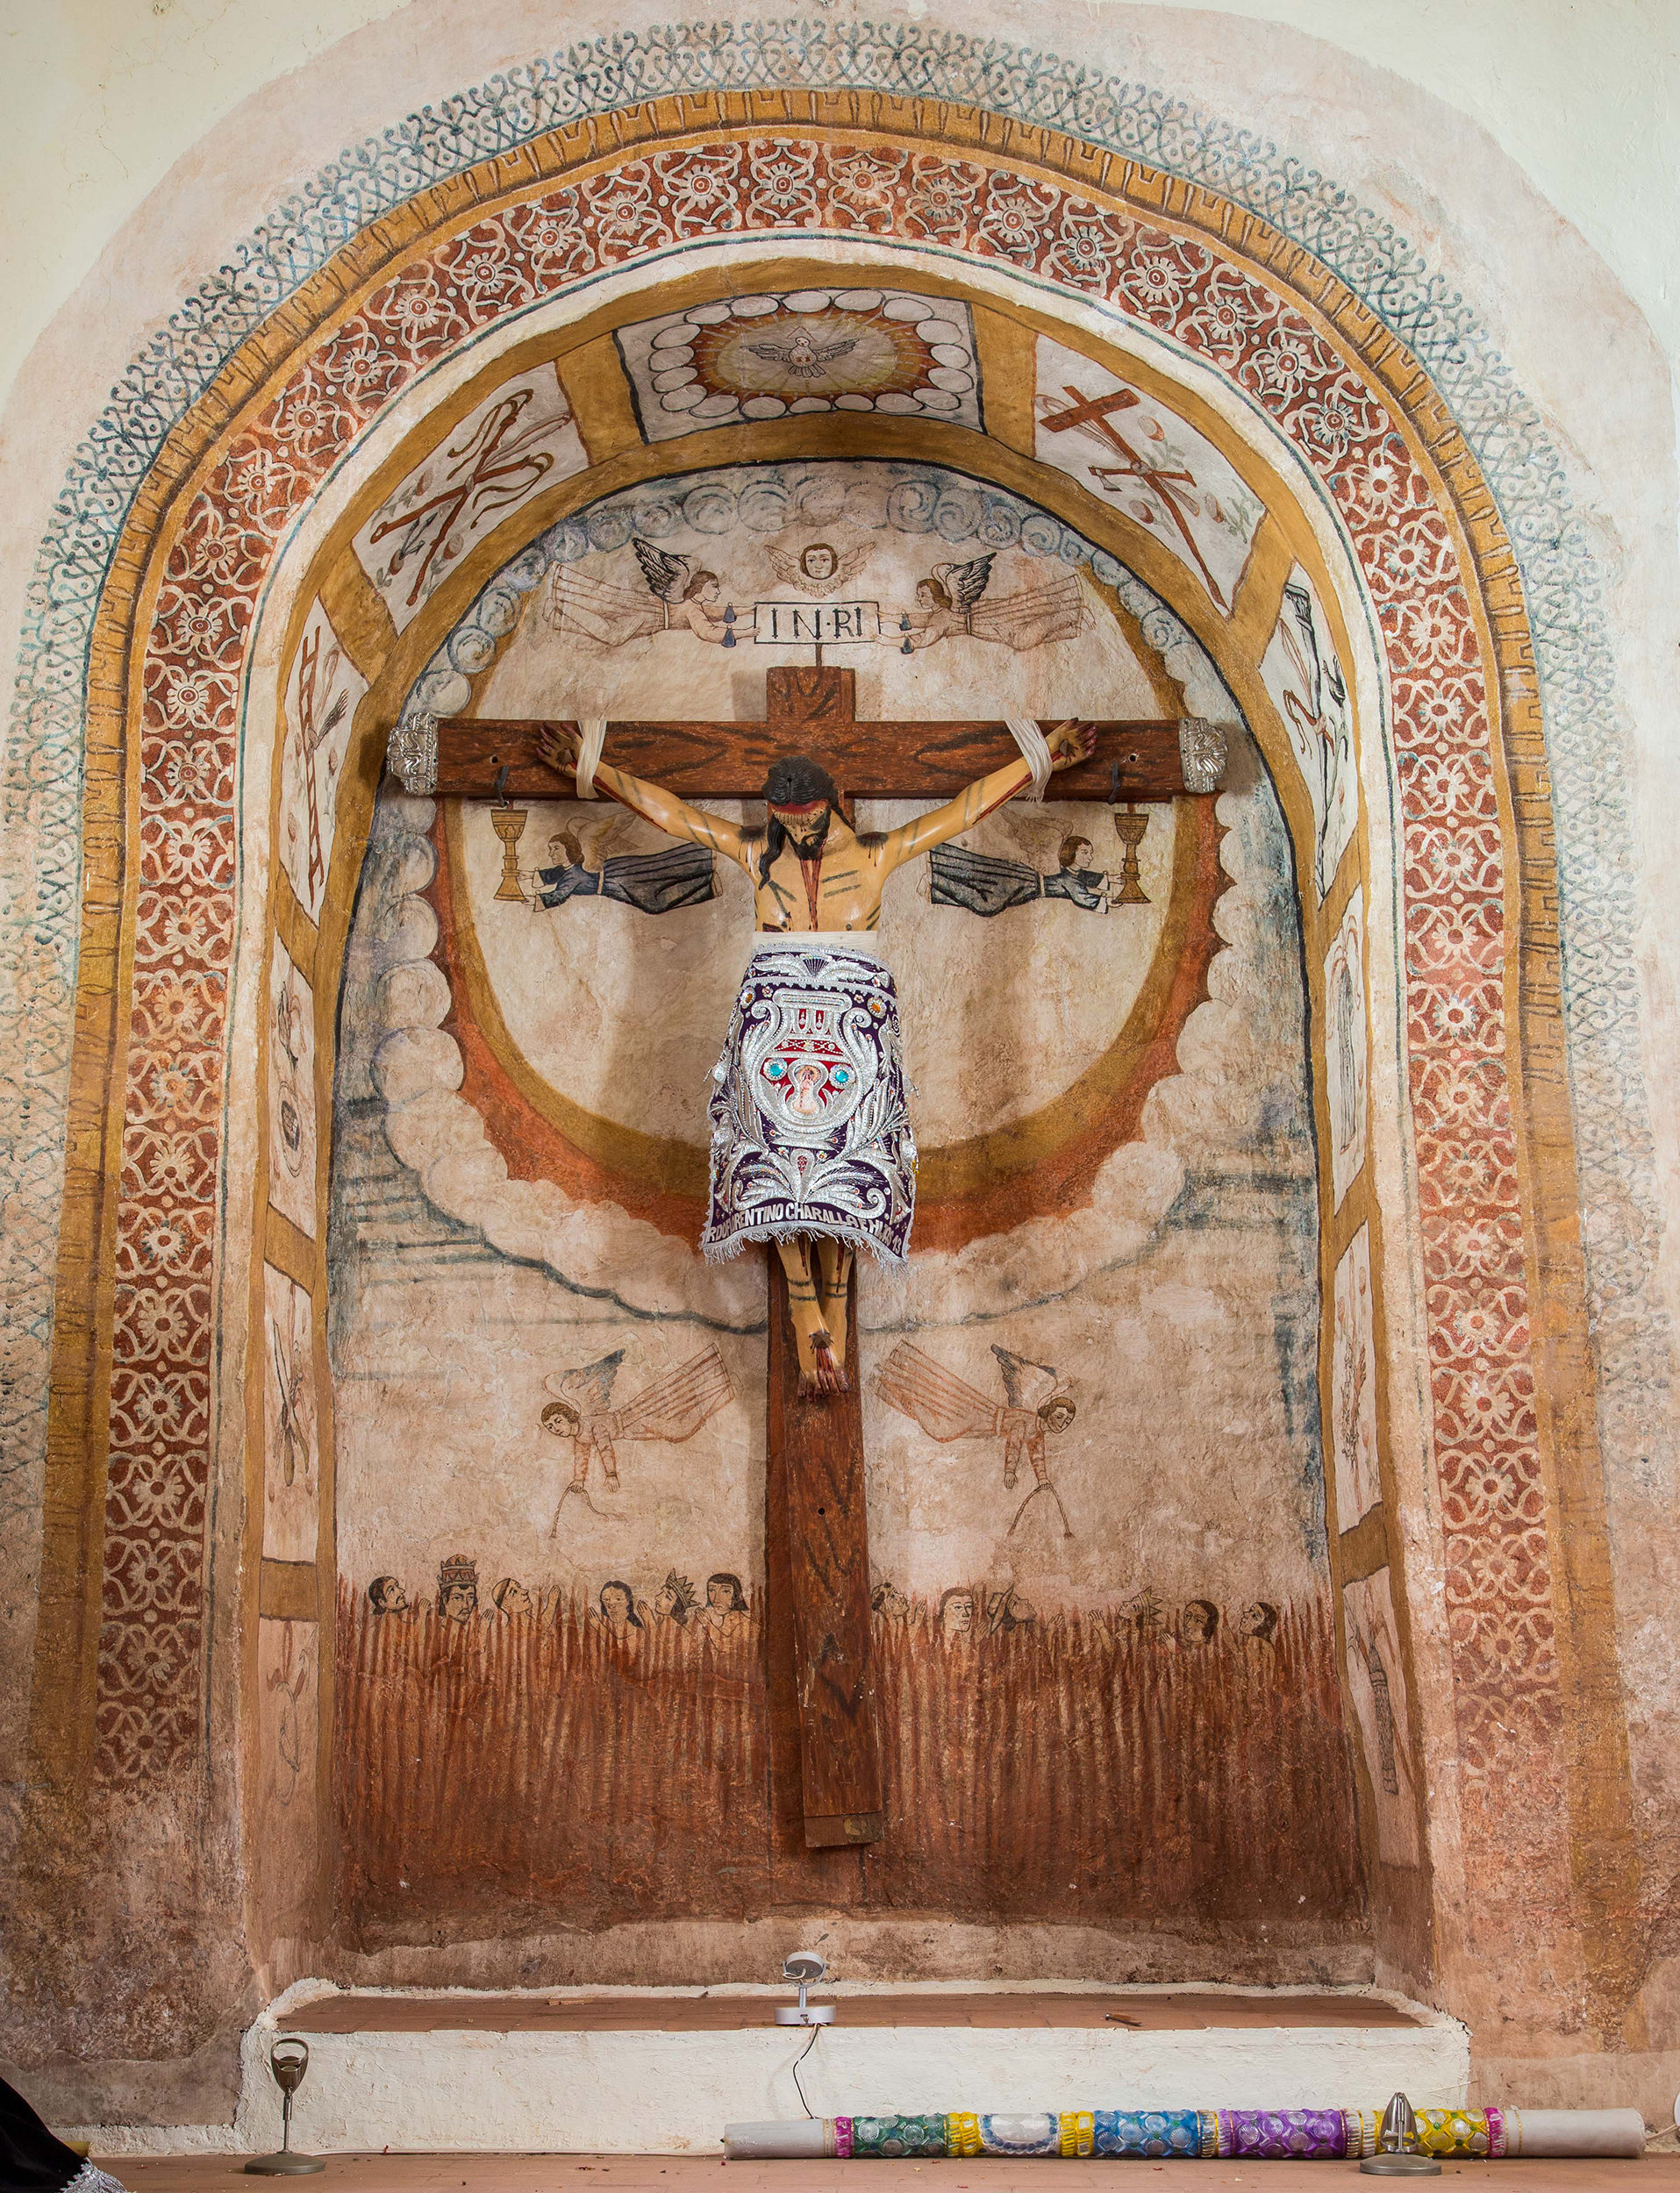 Fig. 31 Painted niche with crucifix, late 18th or early 19th century. Church of Sangarará, Acomayo Province. Photo by Raúl Montero Quispe. This niche incorporates delicate textile designs along the arch and beautifully integrates the crucifix within a painted background with Christ's body set against a heavenly backdrop and the souls of Purgatory below.